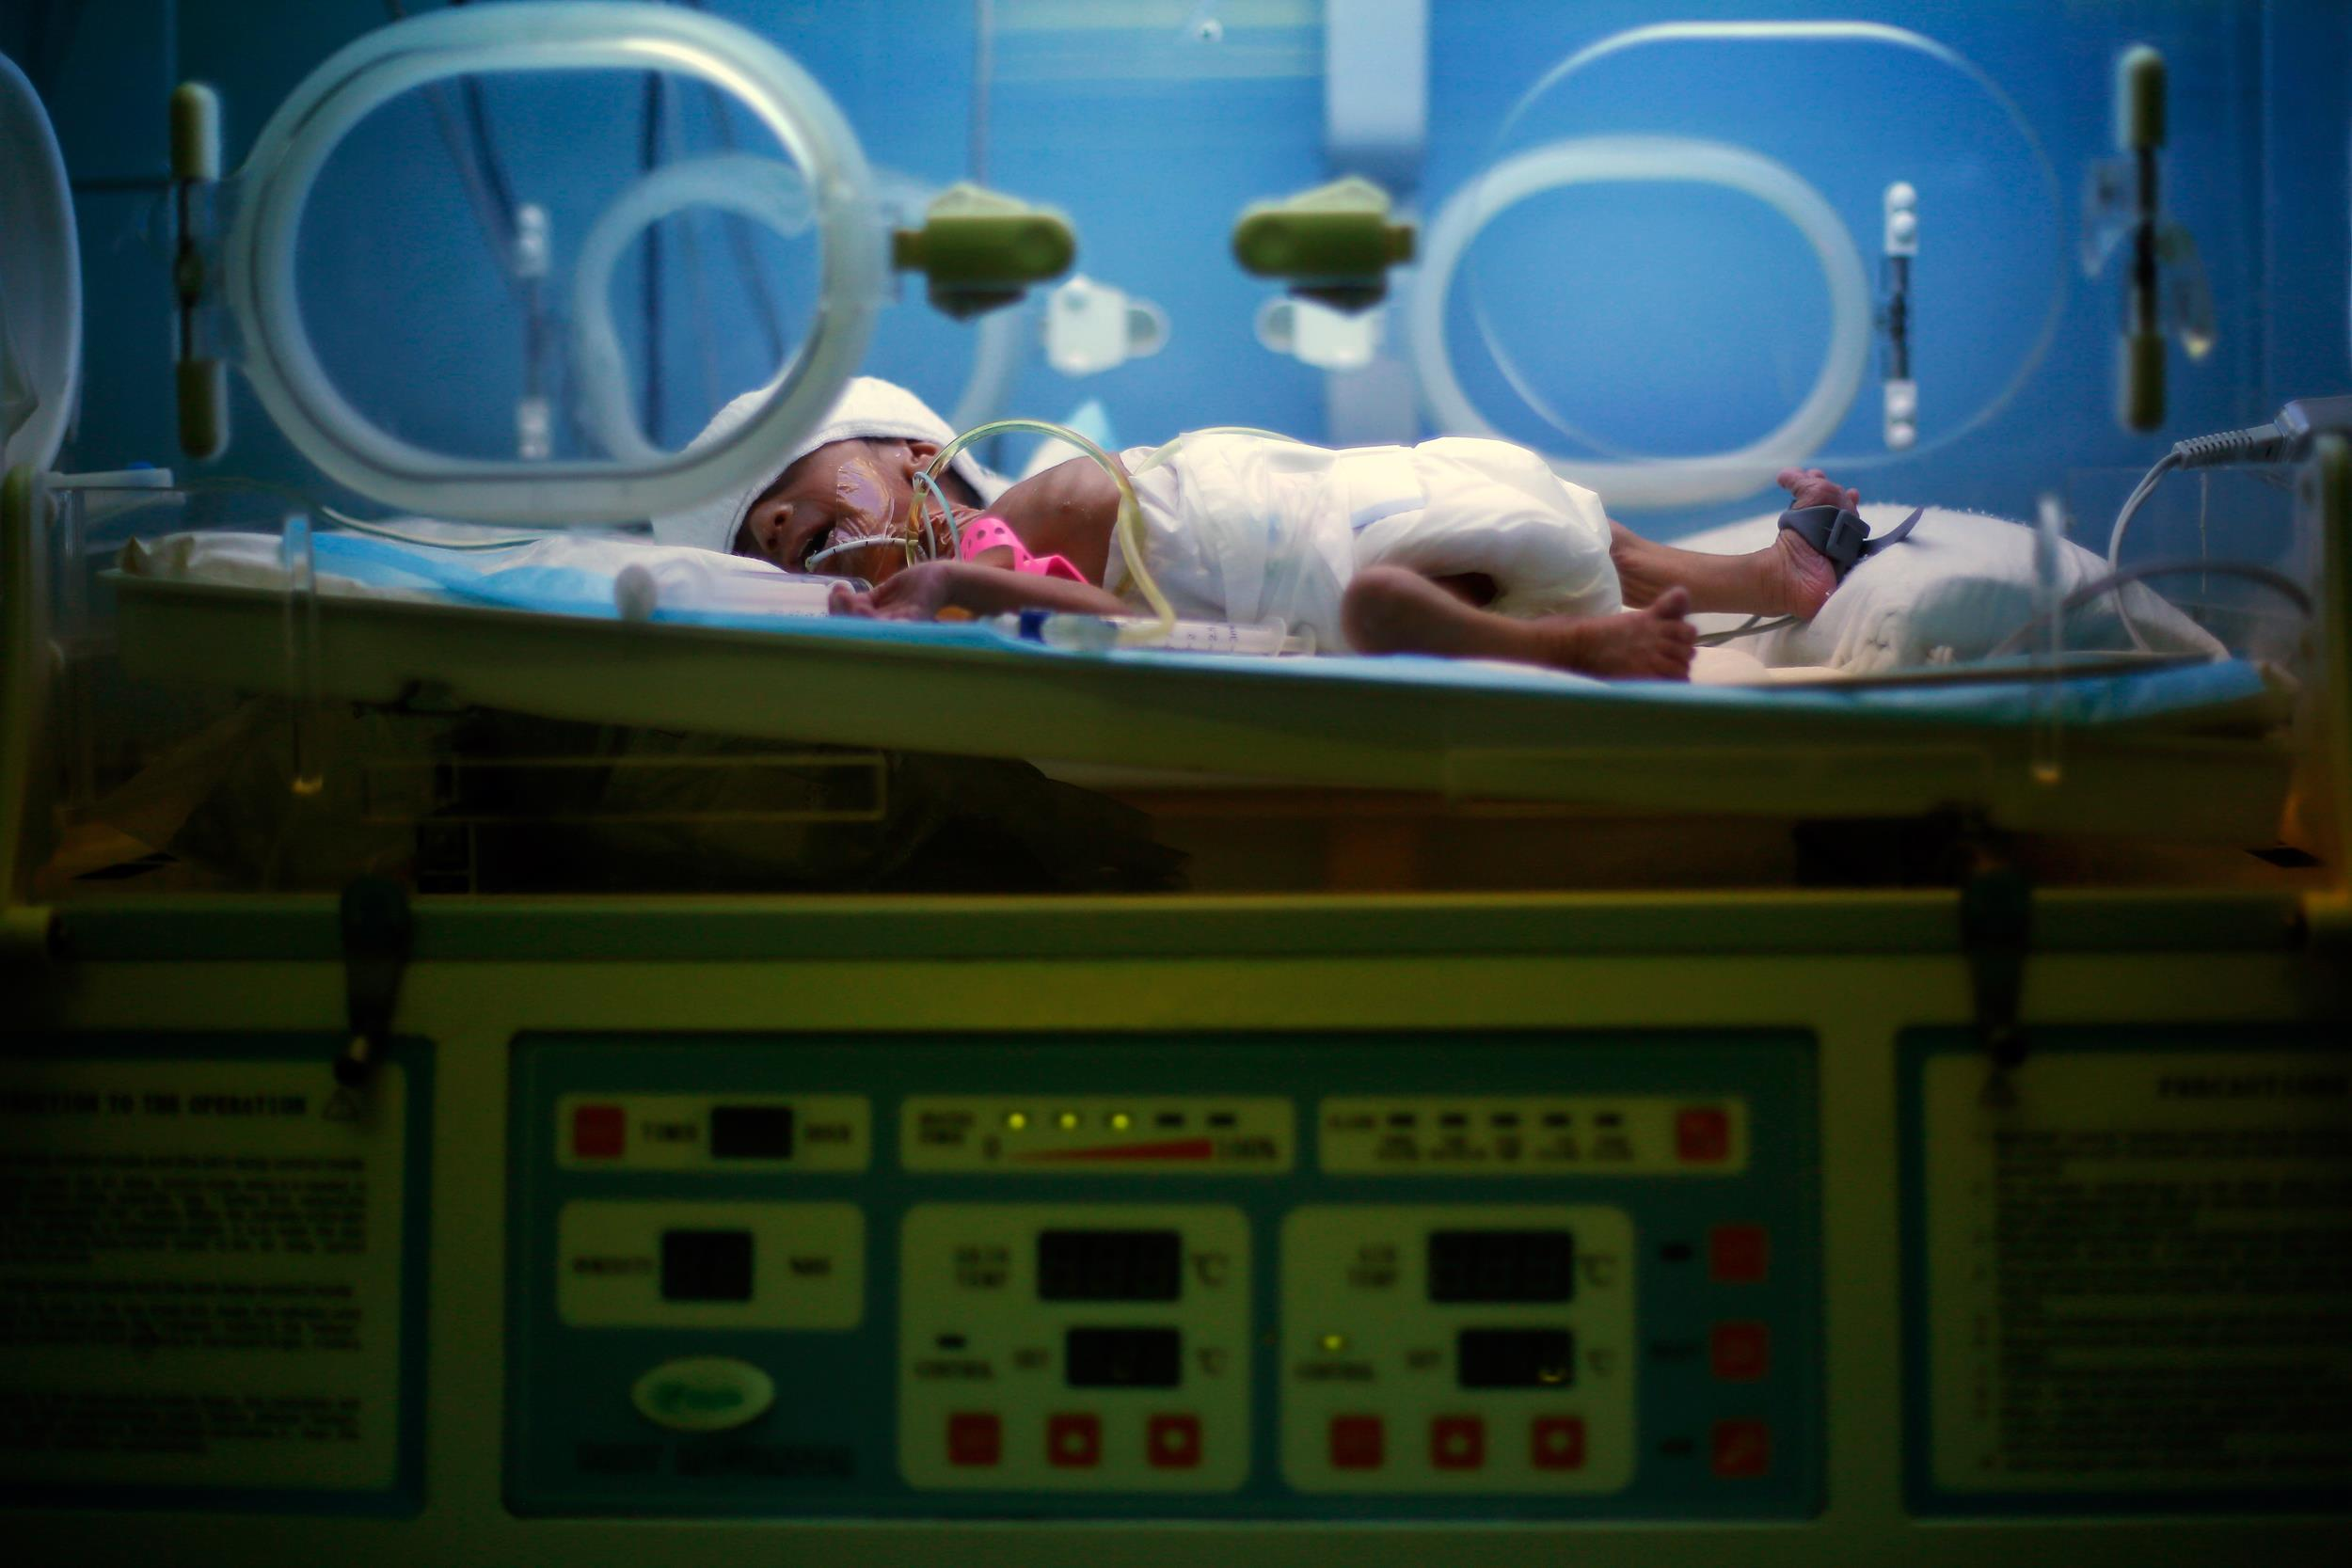 Image: A premature Syrian baby sleeps in an incubator at Chtaura's hospital in Chtaura, Lebanon